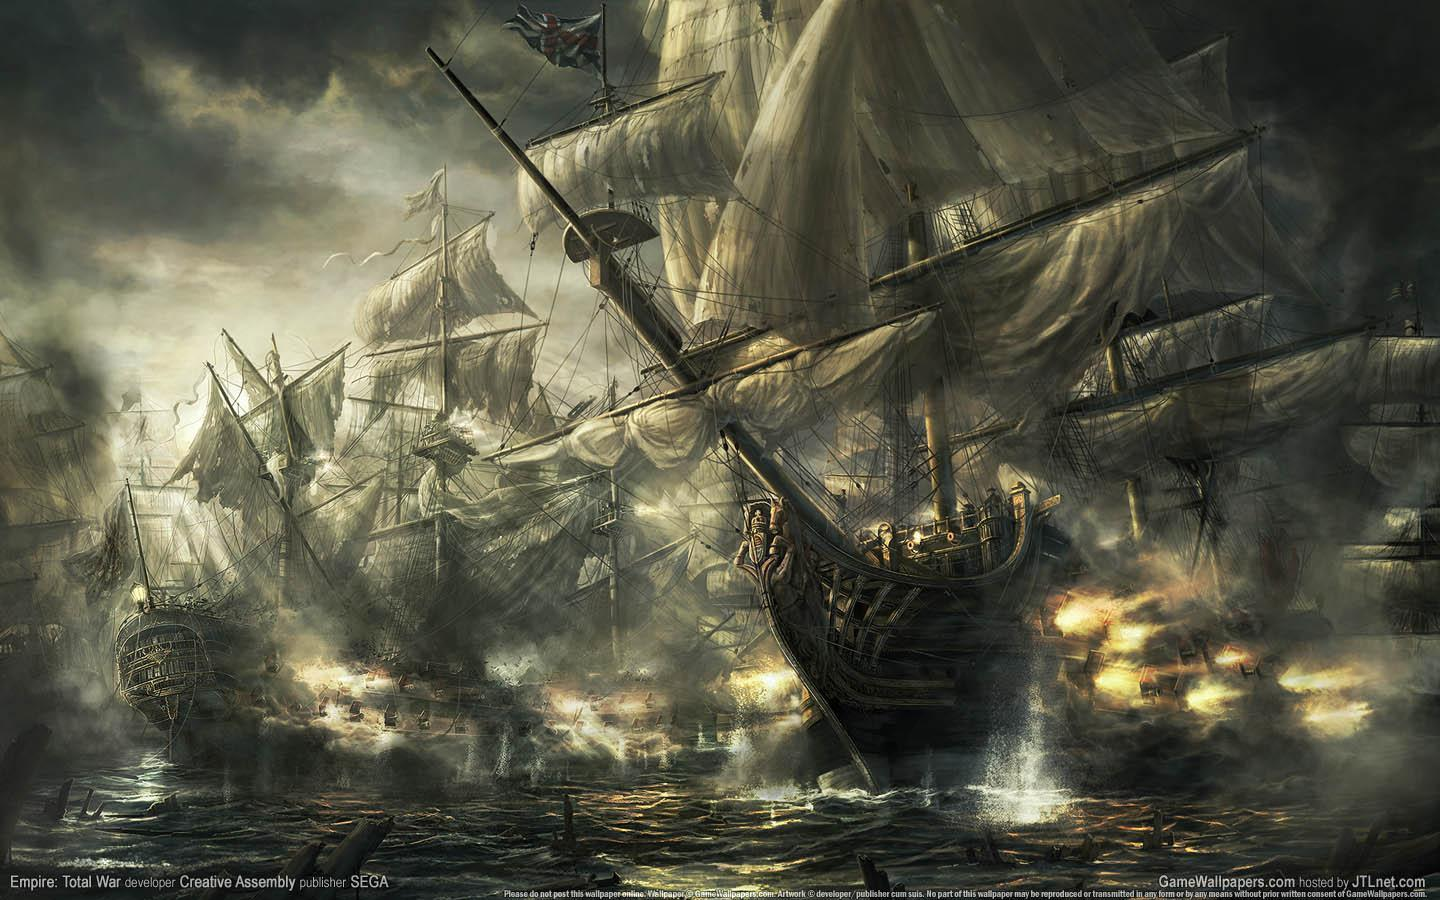 Pirate Ship Wallpapers - Top Free